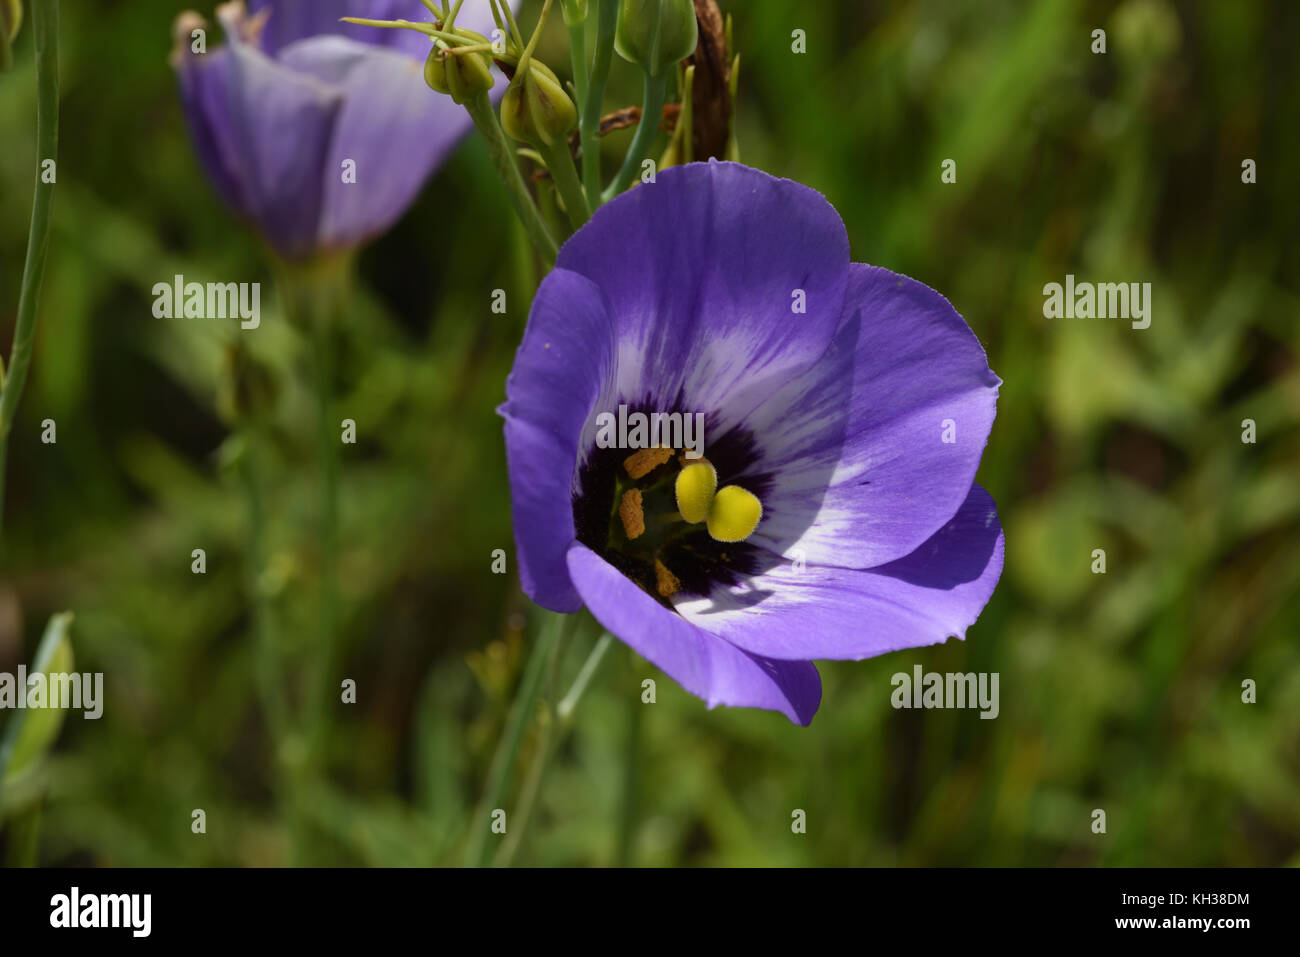 Texas bluebell - Stock Image